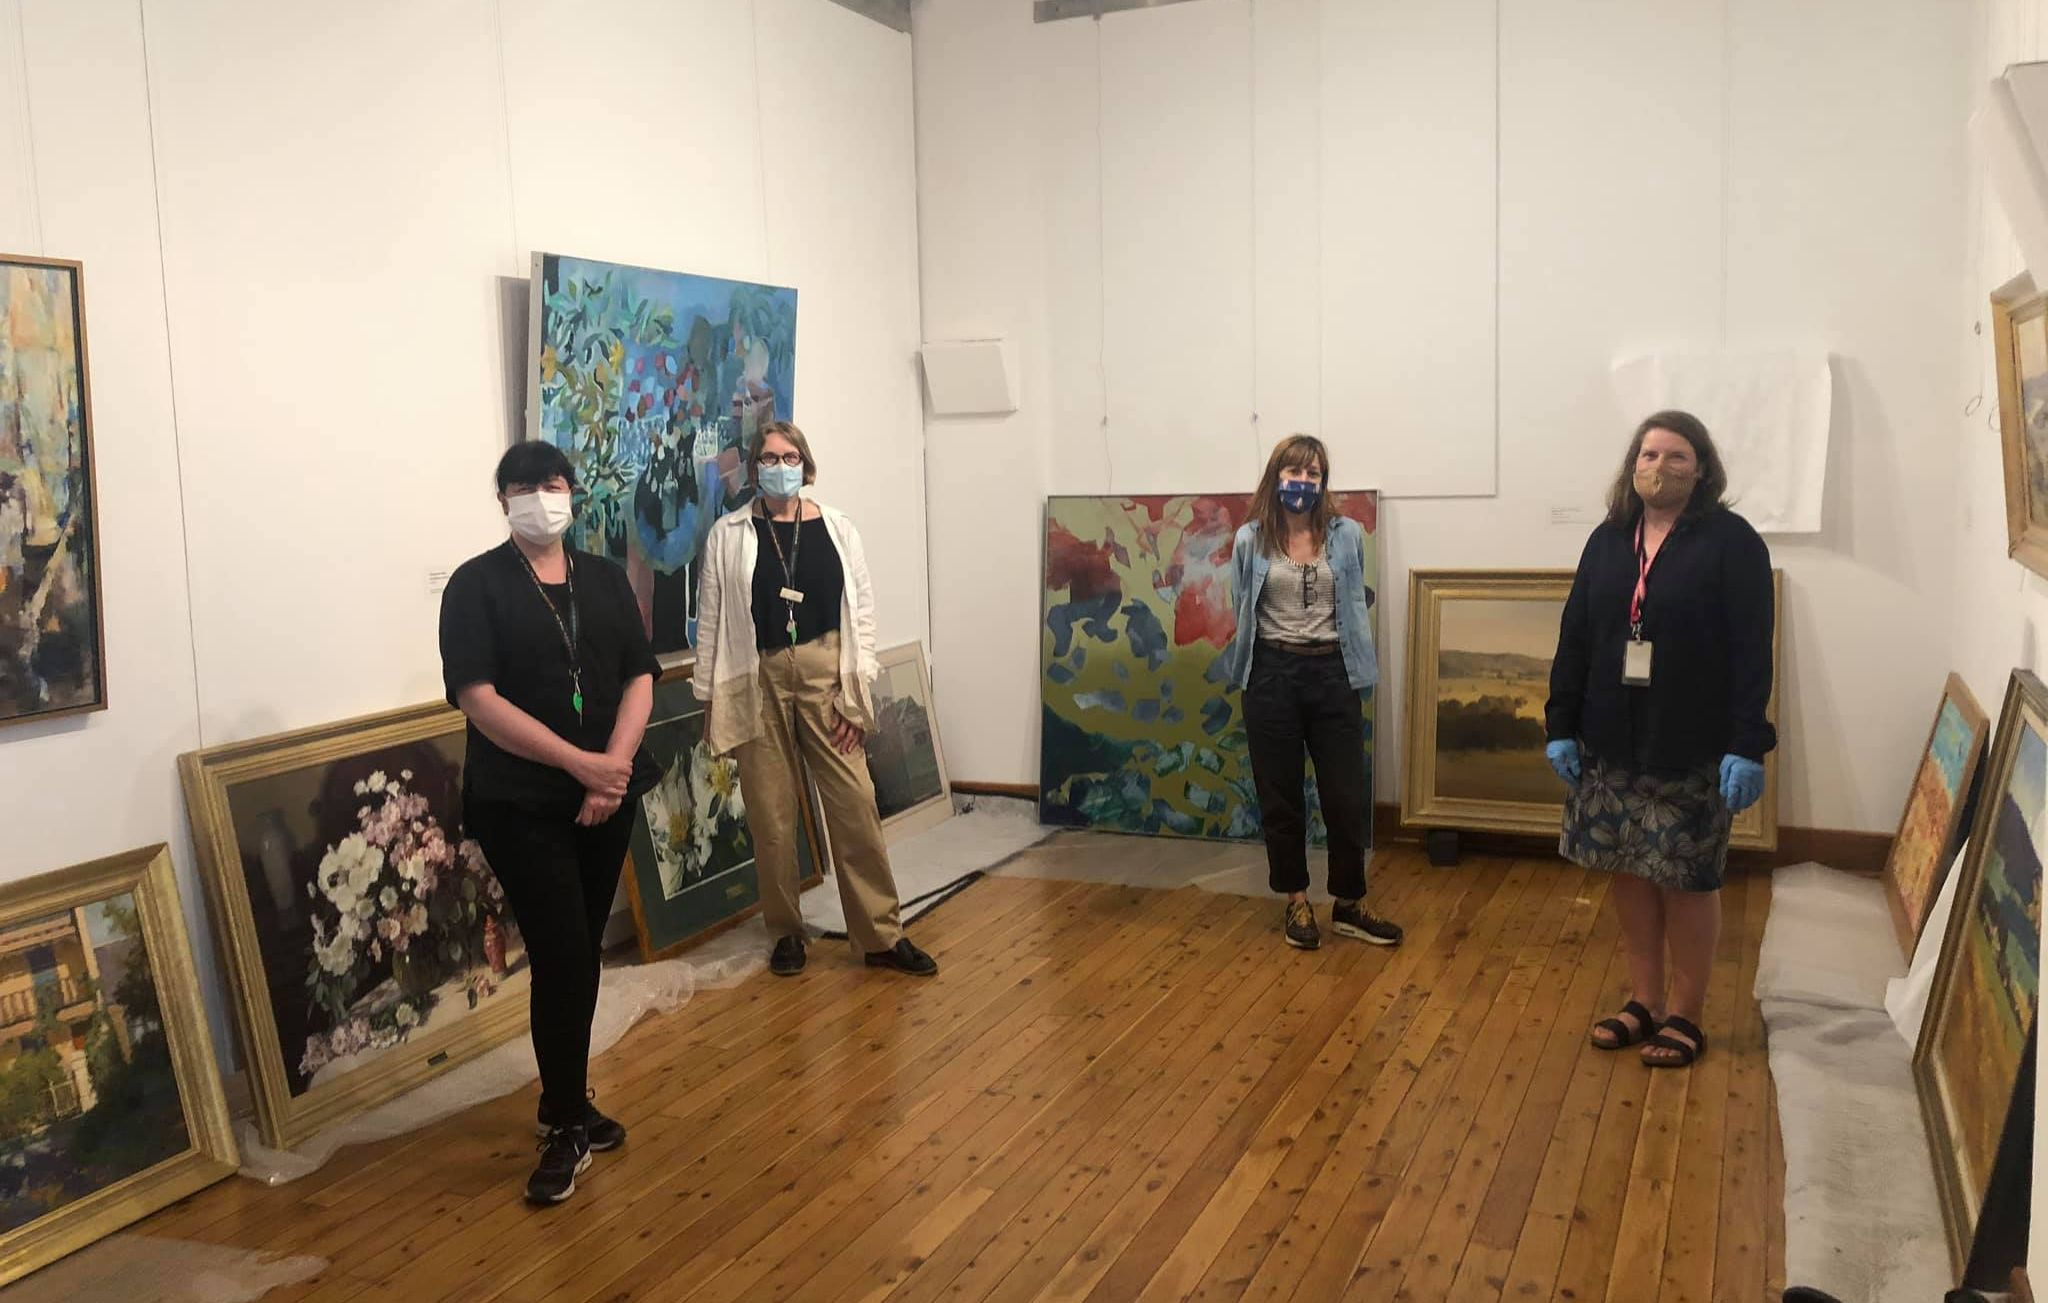 Staff at Wangaratta Art Gallery working to digitise the collection as part of Creative Victoria's Digital Roadshow